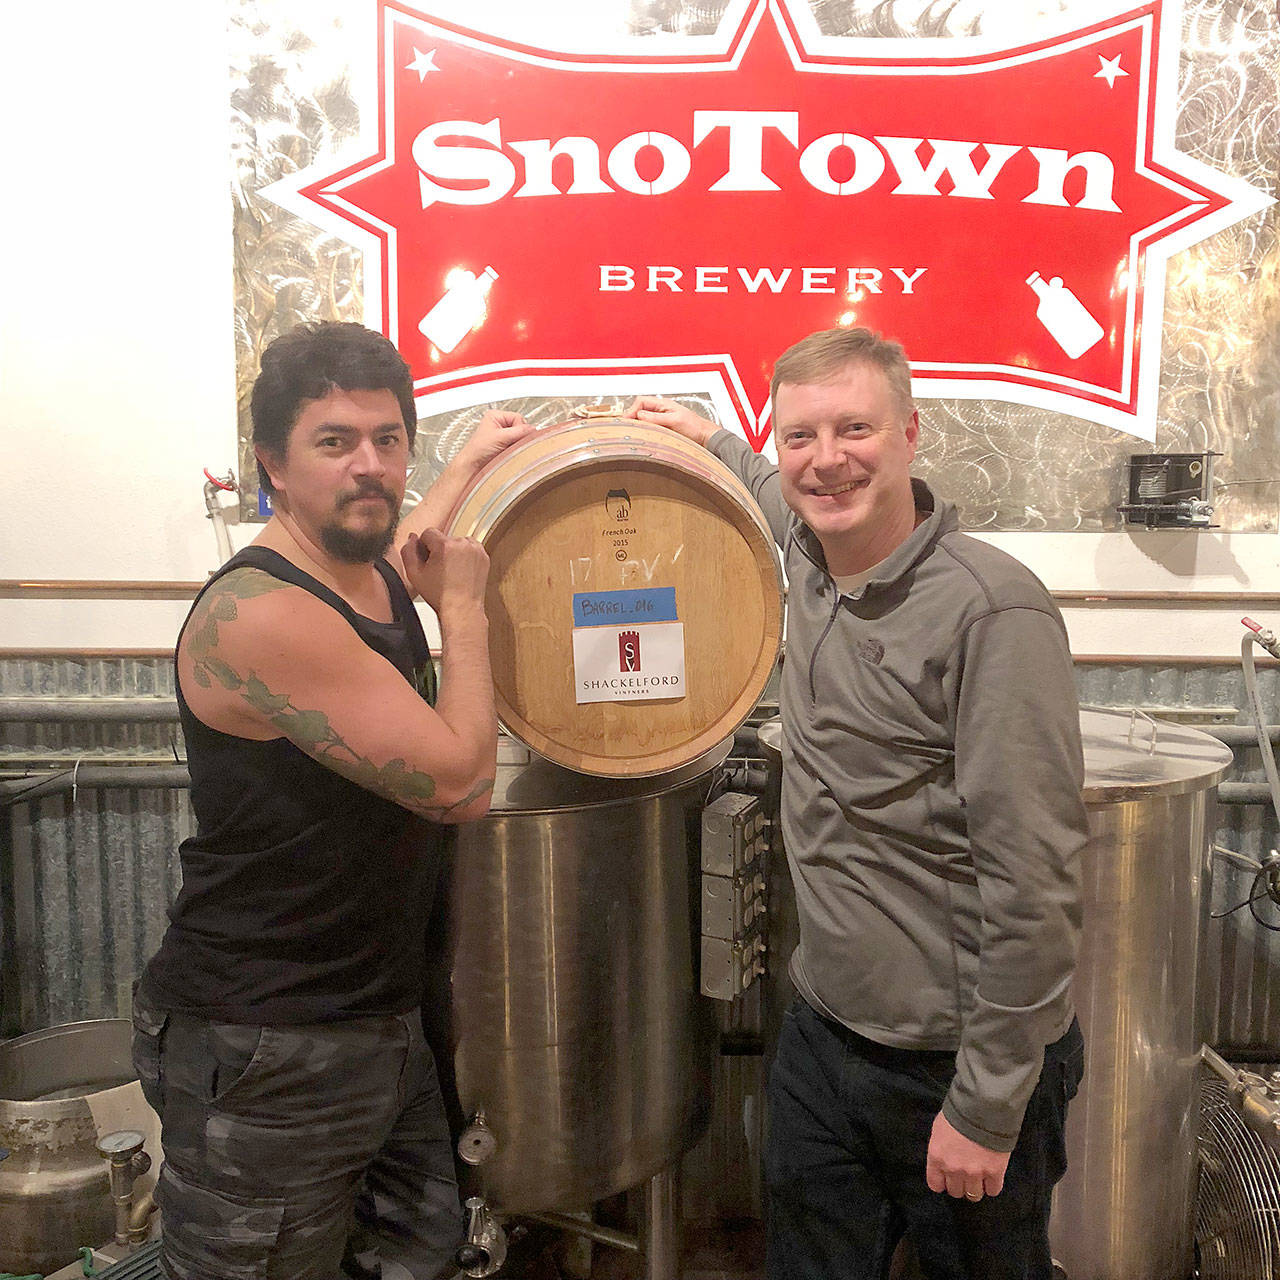 SnoTown Brewing's Frank Sandoval (left) and Shackelford Vintners' Ron Shackelford pose next to the red wine barrel Shackelford gave to Sandoval for aging one of his beers. (Photo by Aaron Swaney)